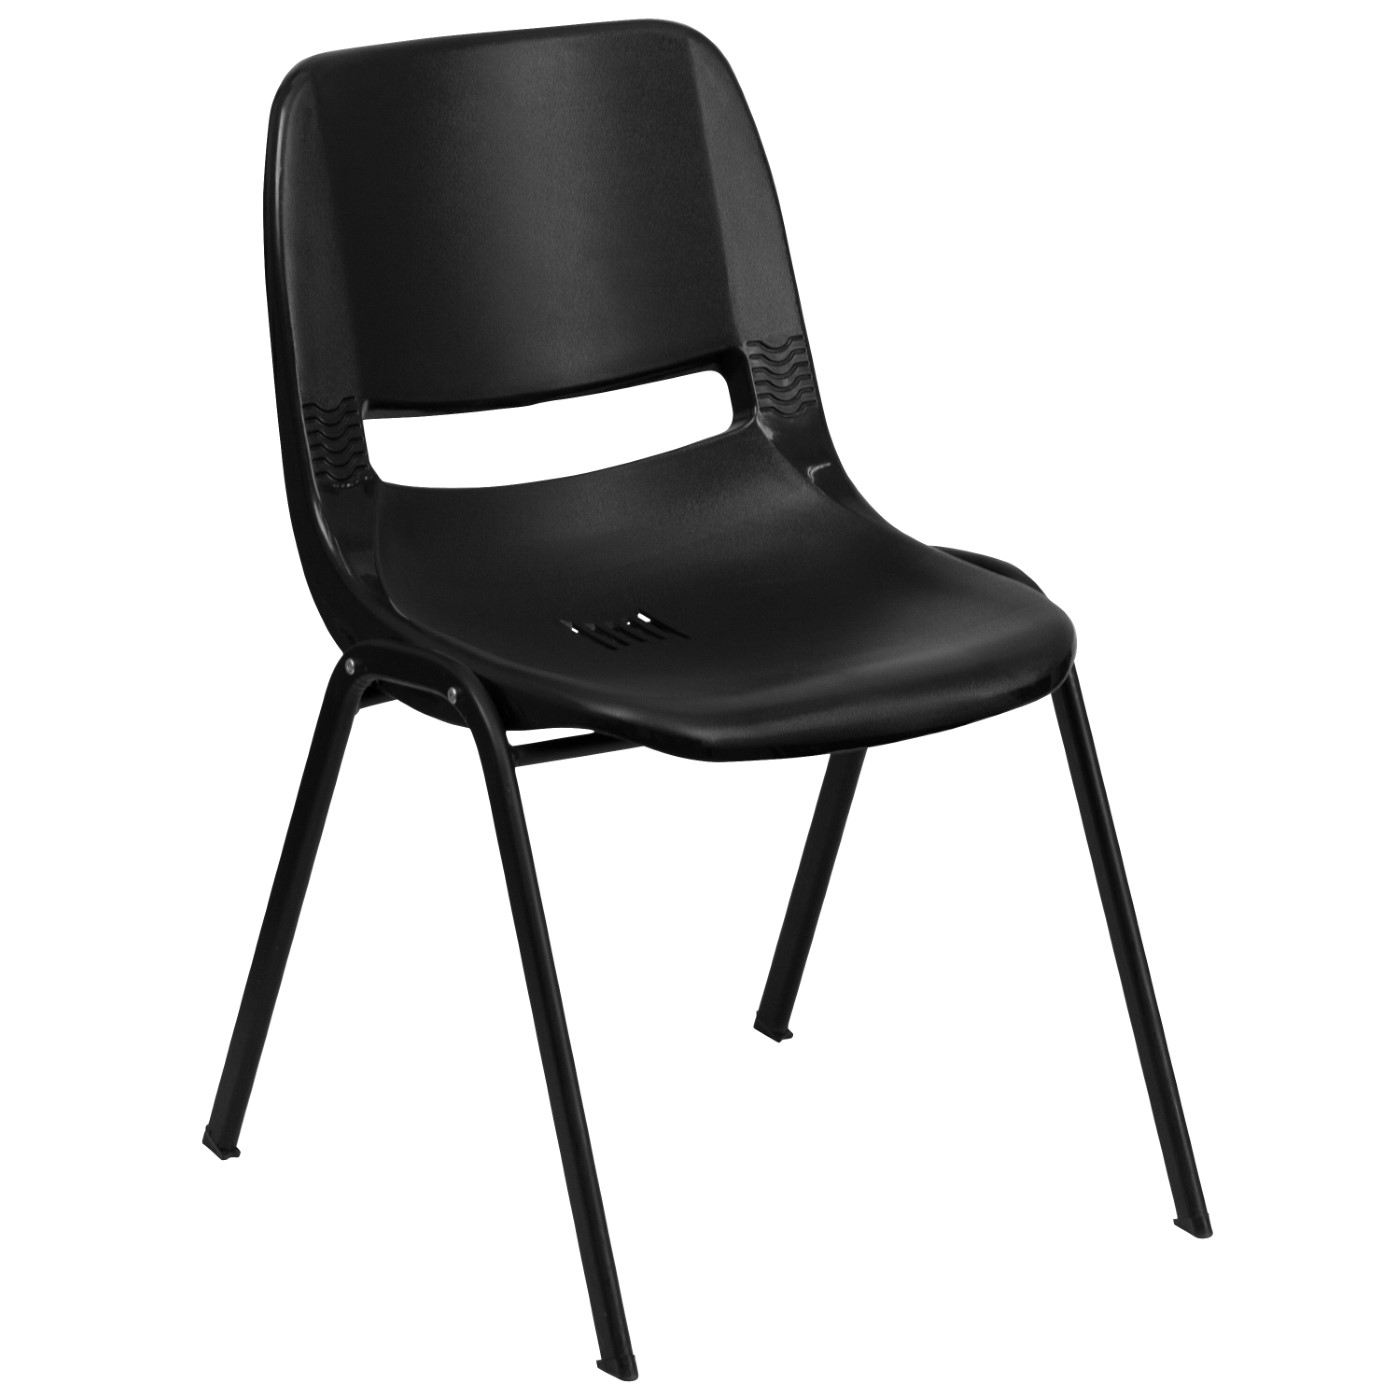 TOUGH ENOUGH Series 880 lb. Capacity Black Ergonomic Shell Stack Chair with Black Frame